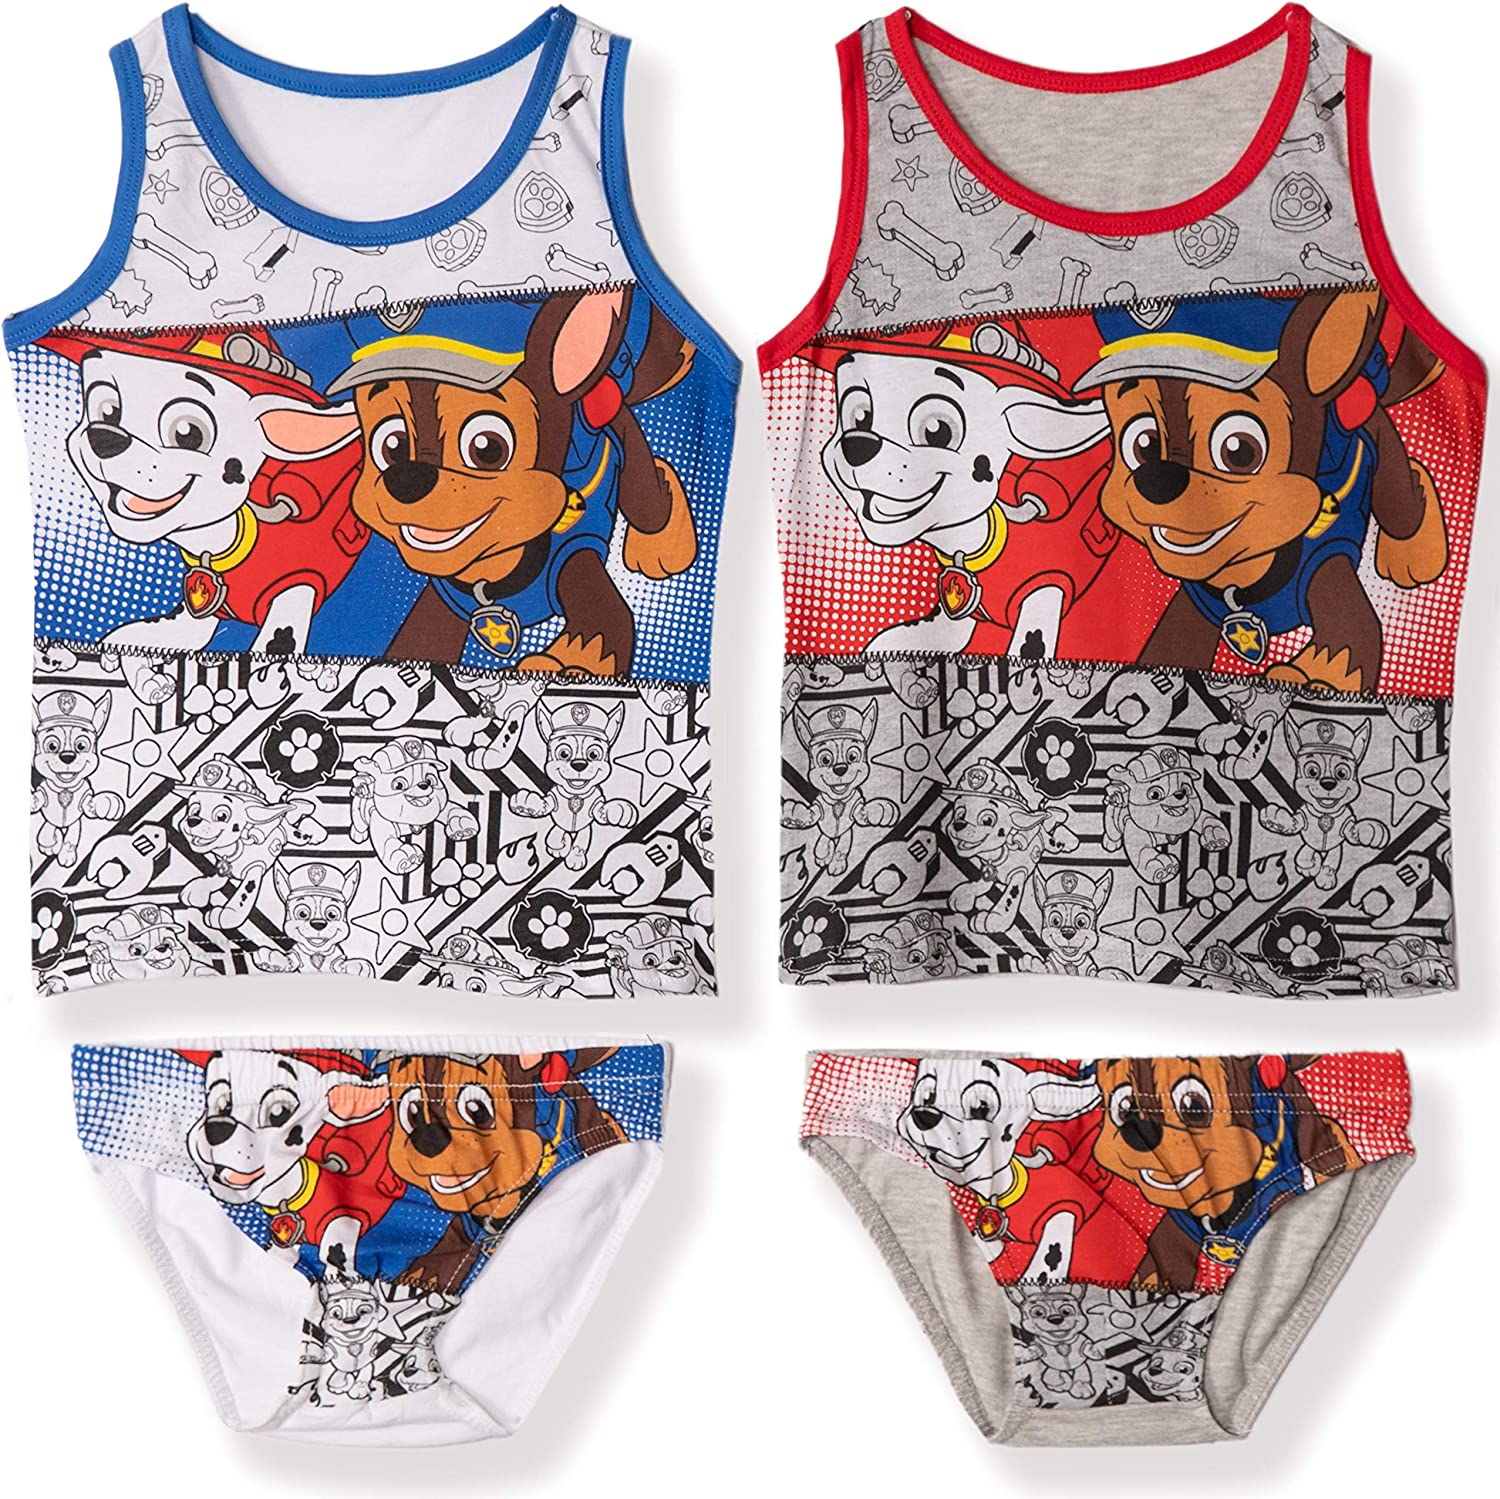 Nickelodeon Paw Patrol Official Boys Underwear Sets 4 PCS Pack 2 Briefs 2-8 Years 2 Vest